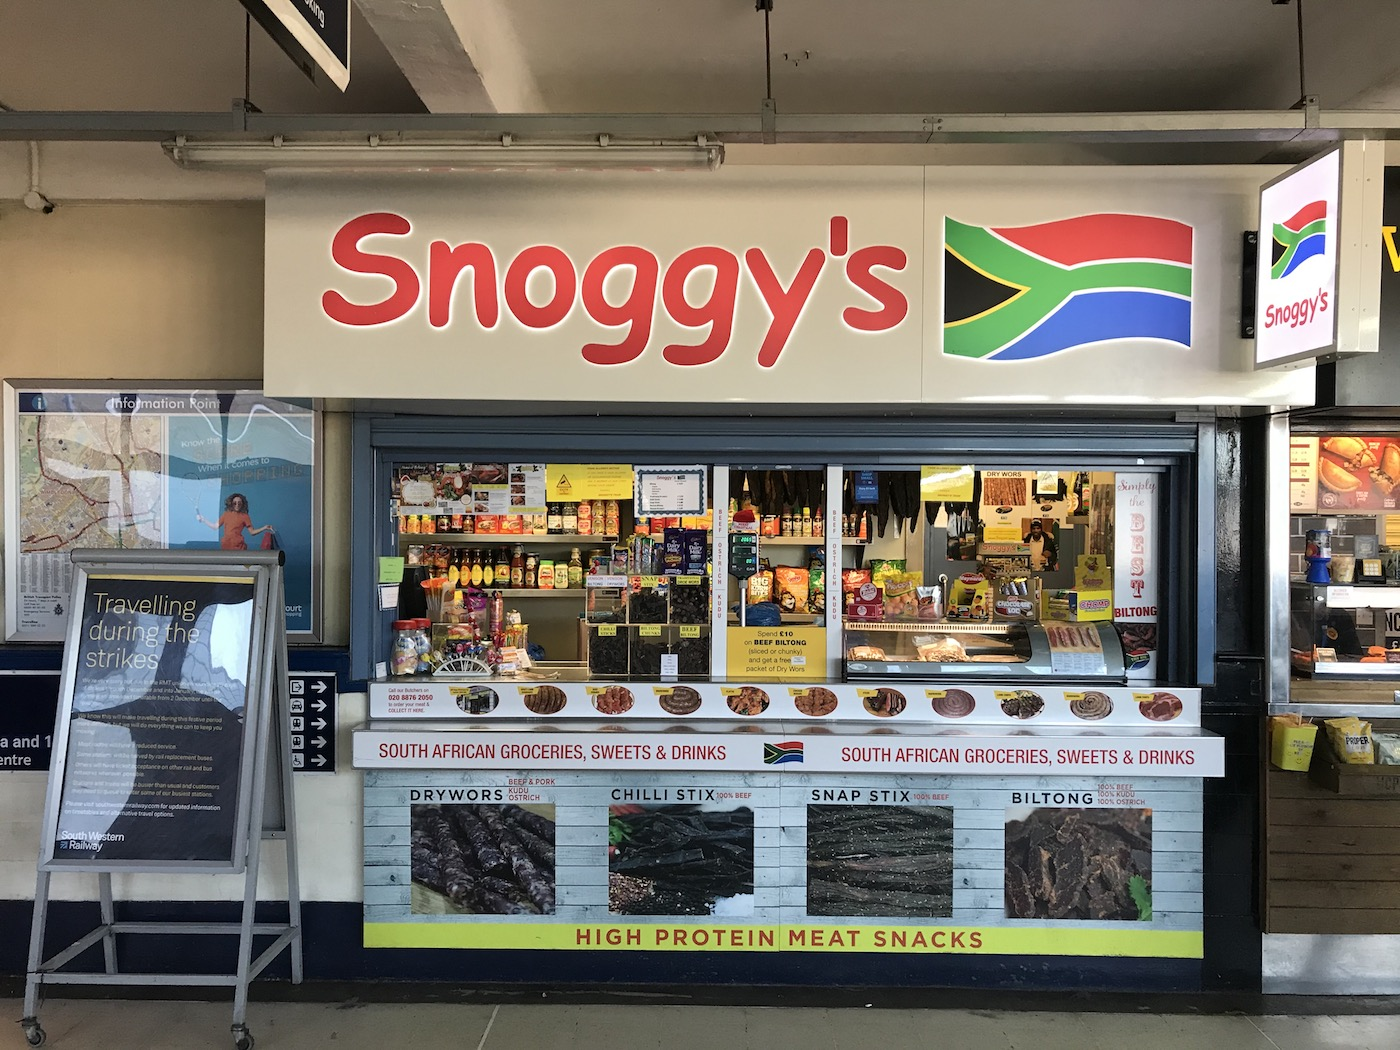 Snoggy's, the South African speciality store in Wimbledon station, caters to the large expat population in the area